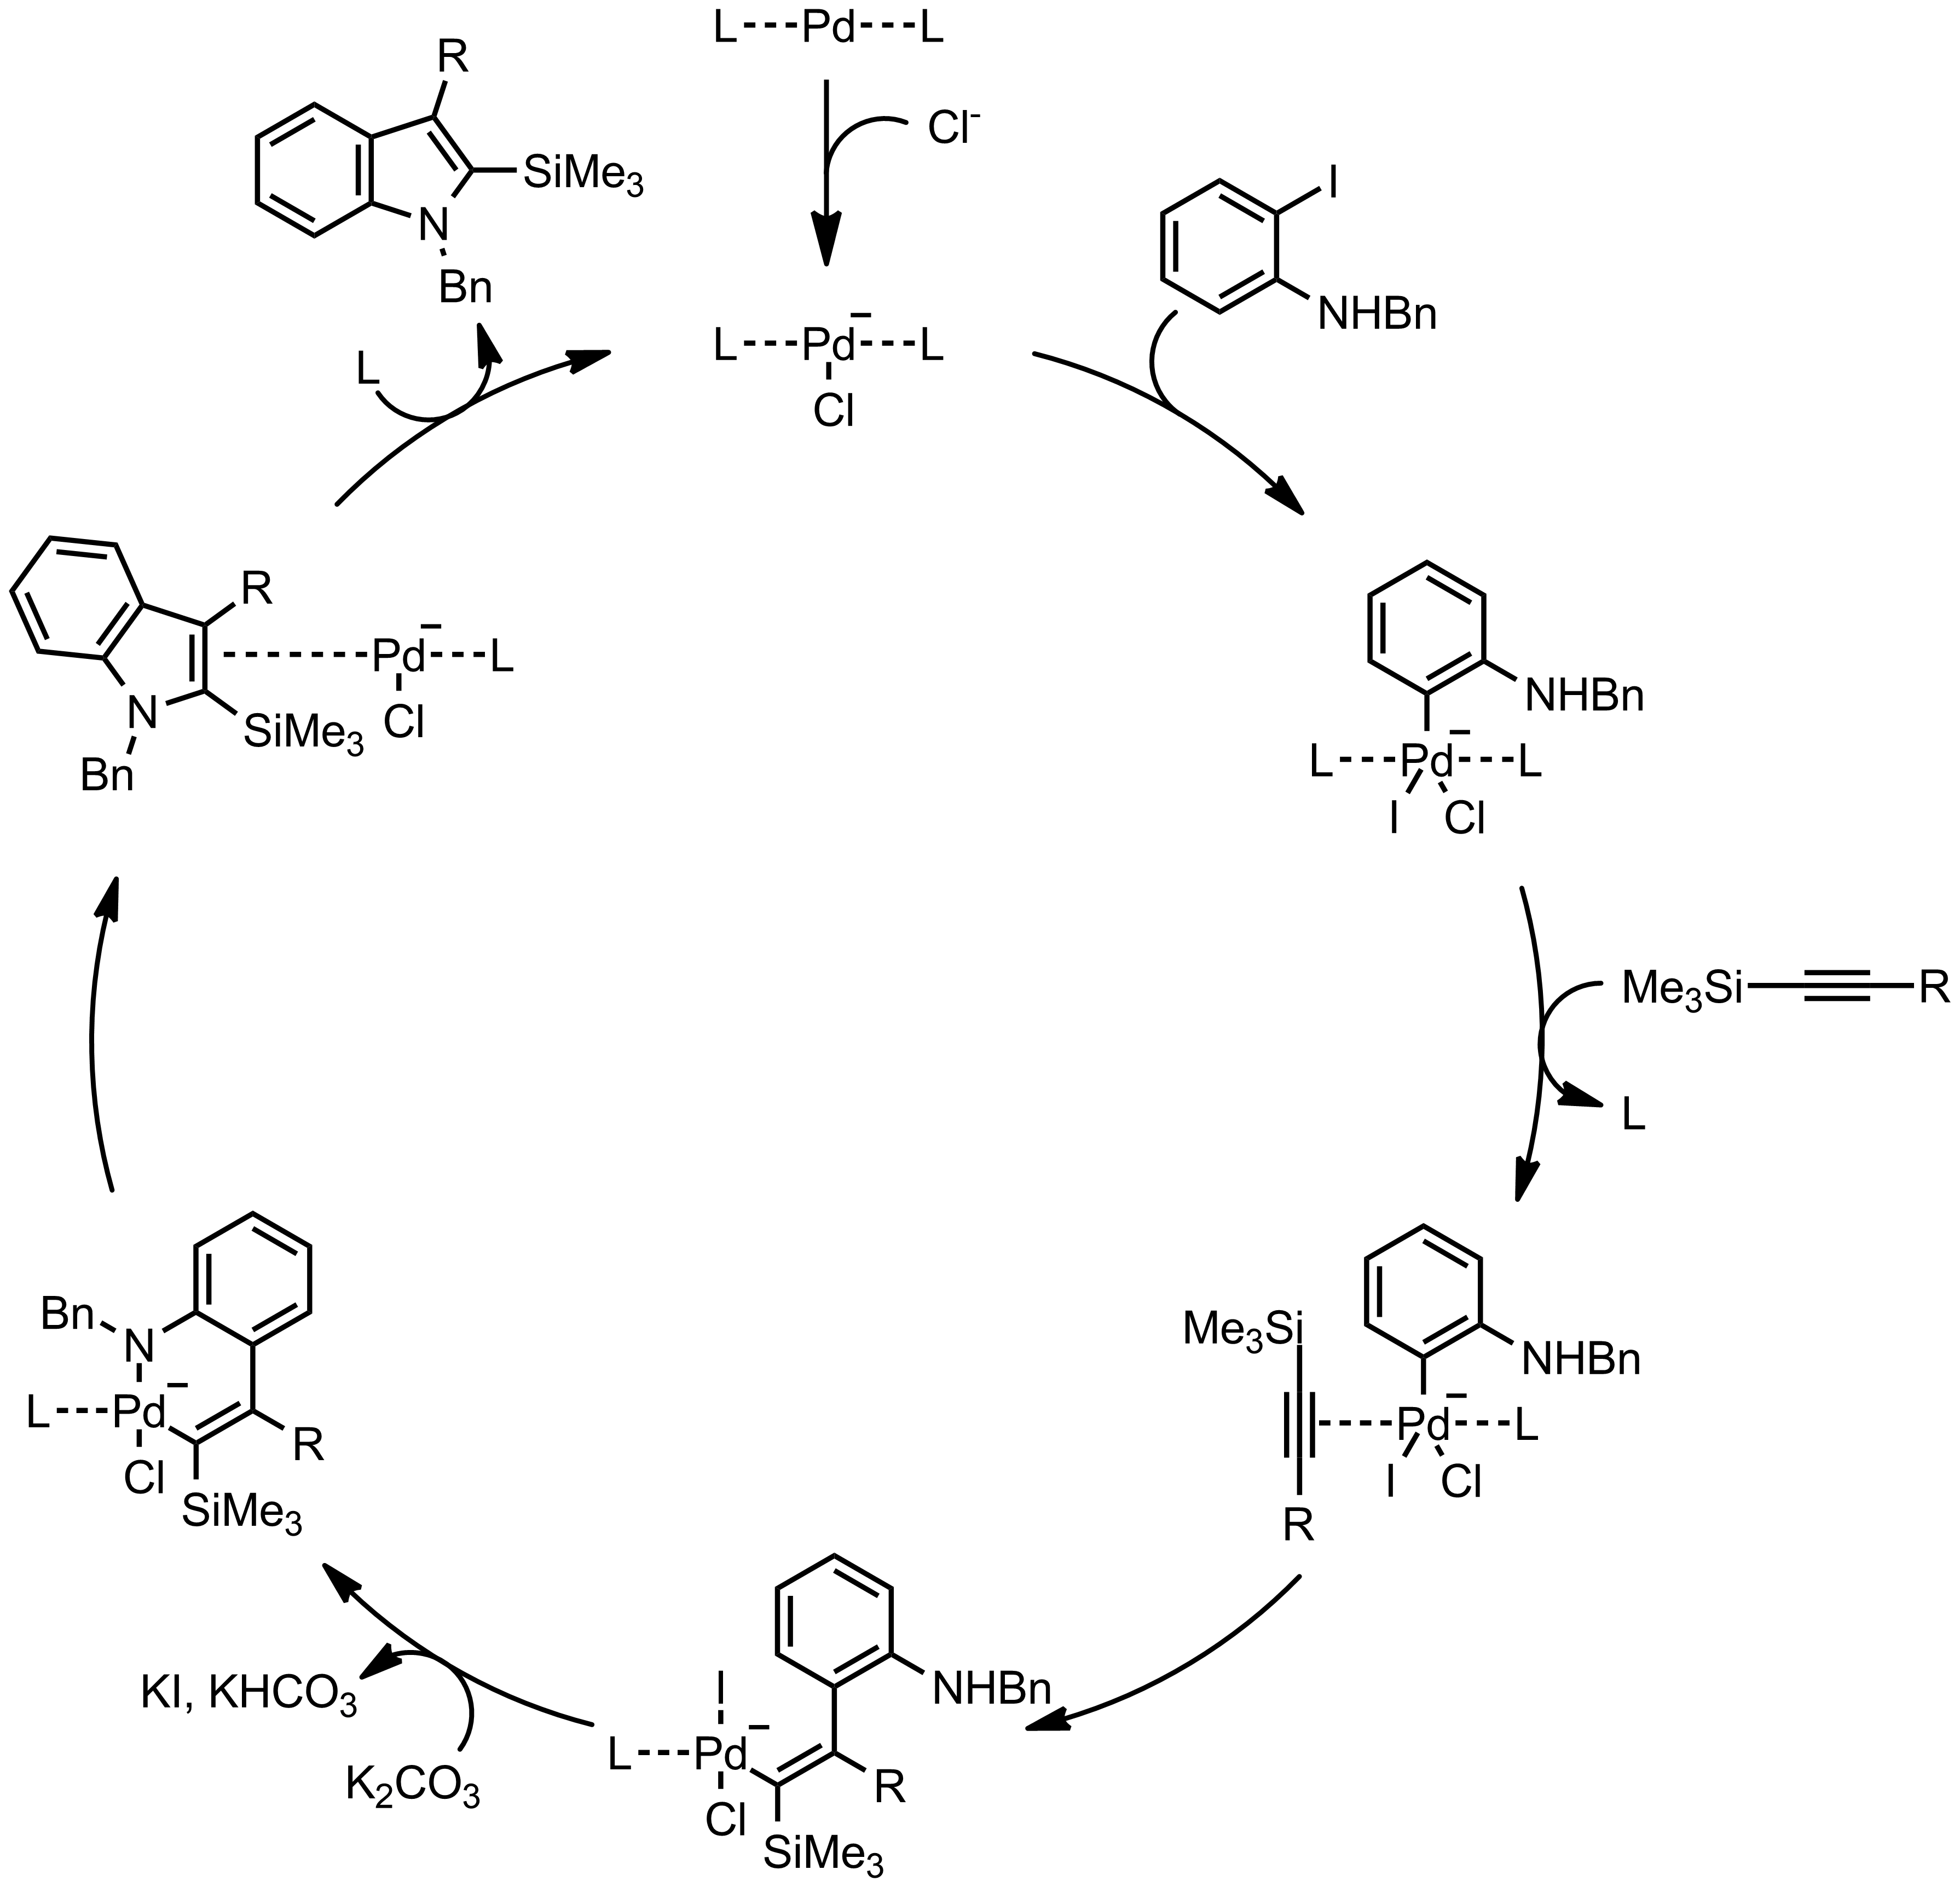 Mechanism of the Larock Indole Synthesis